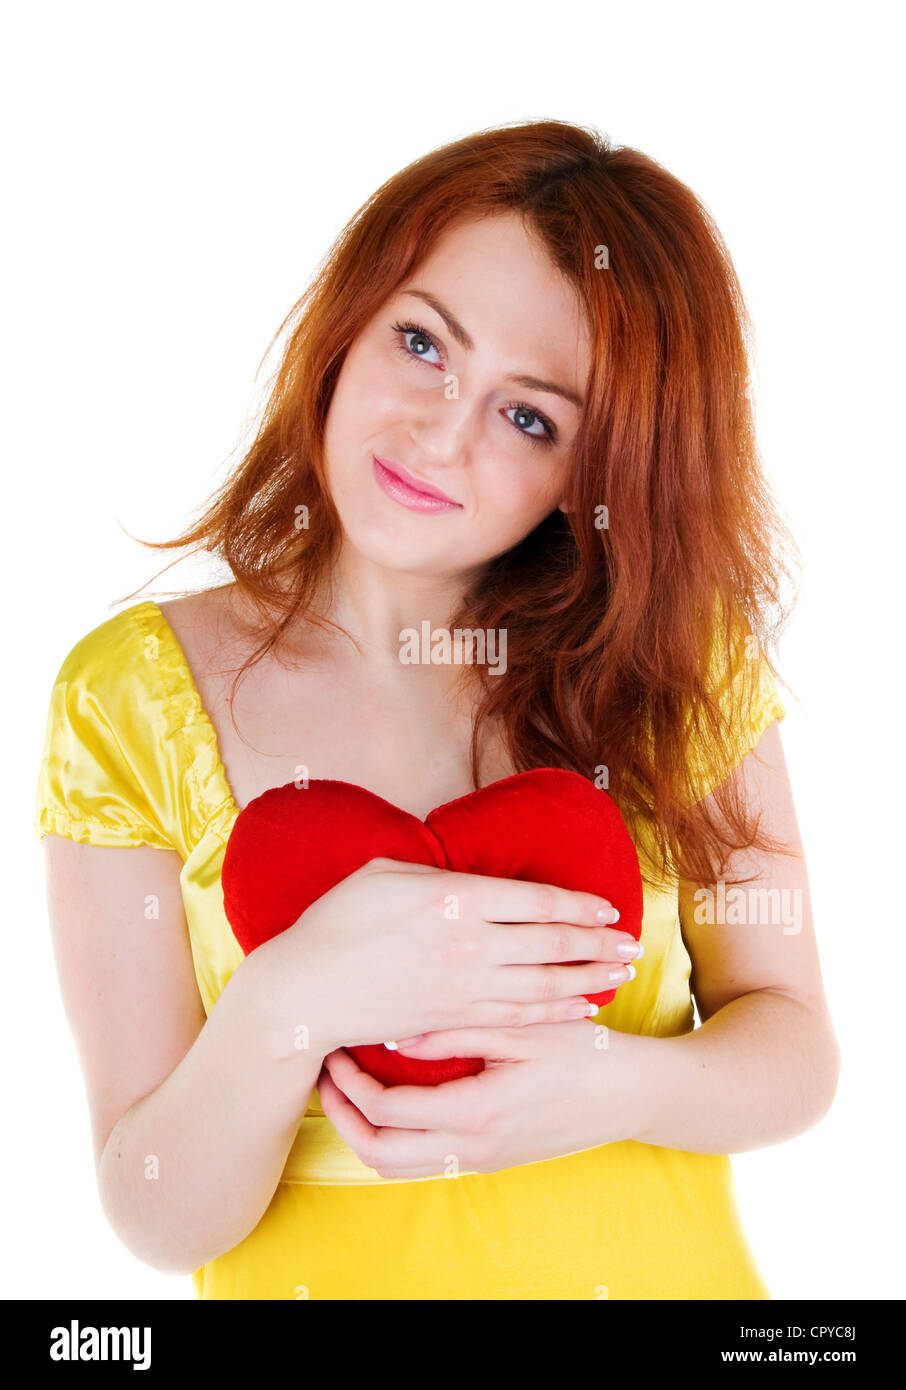 dbab7204365a Young beautiul woman with red heart in her hands on white background. -  Stock Image